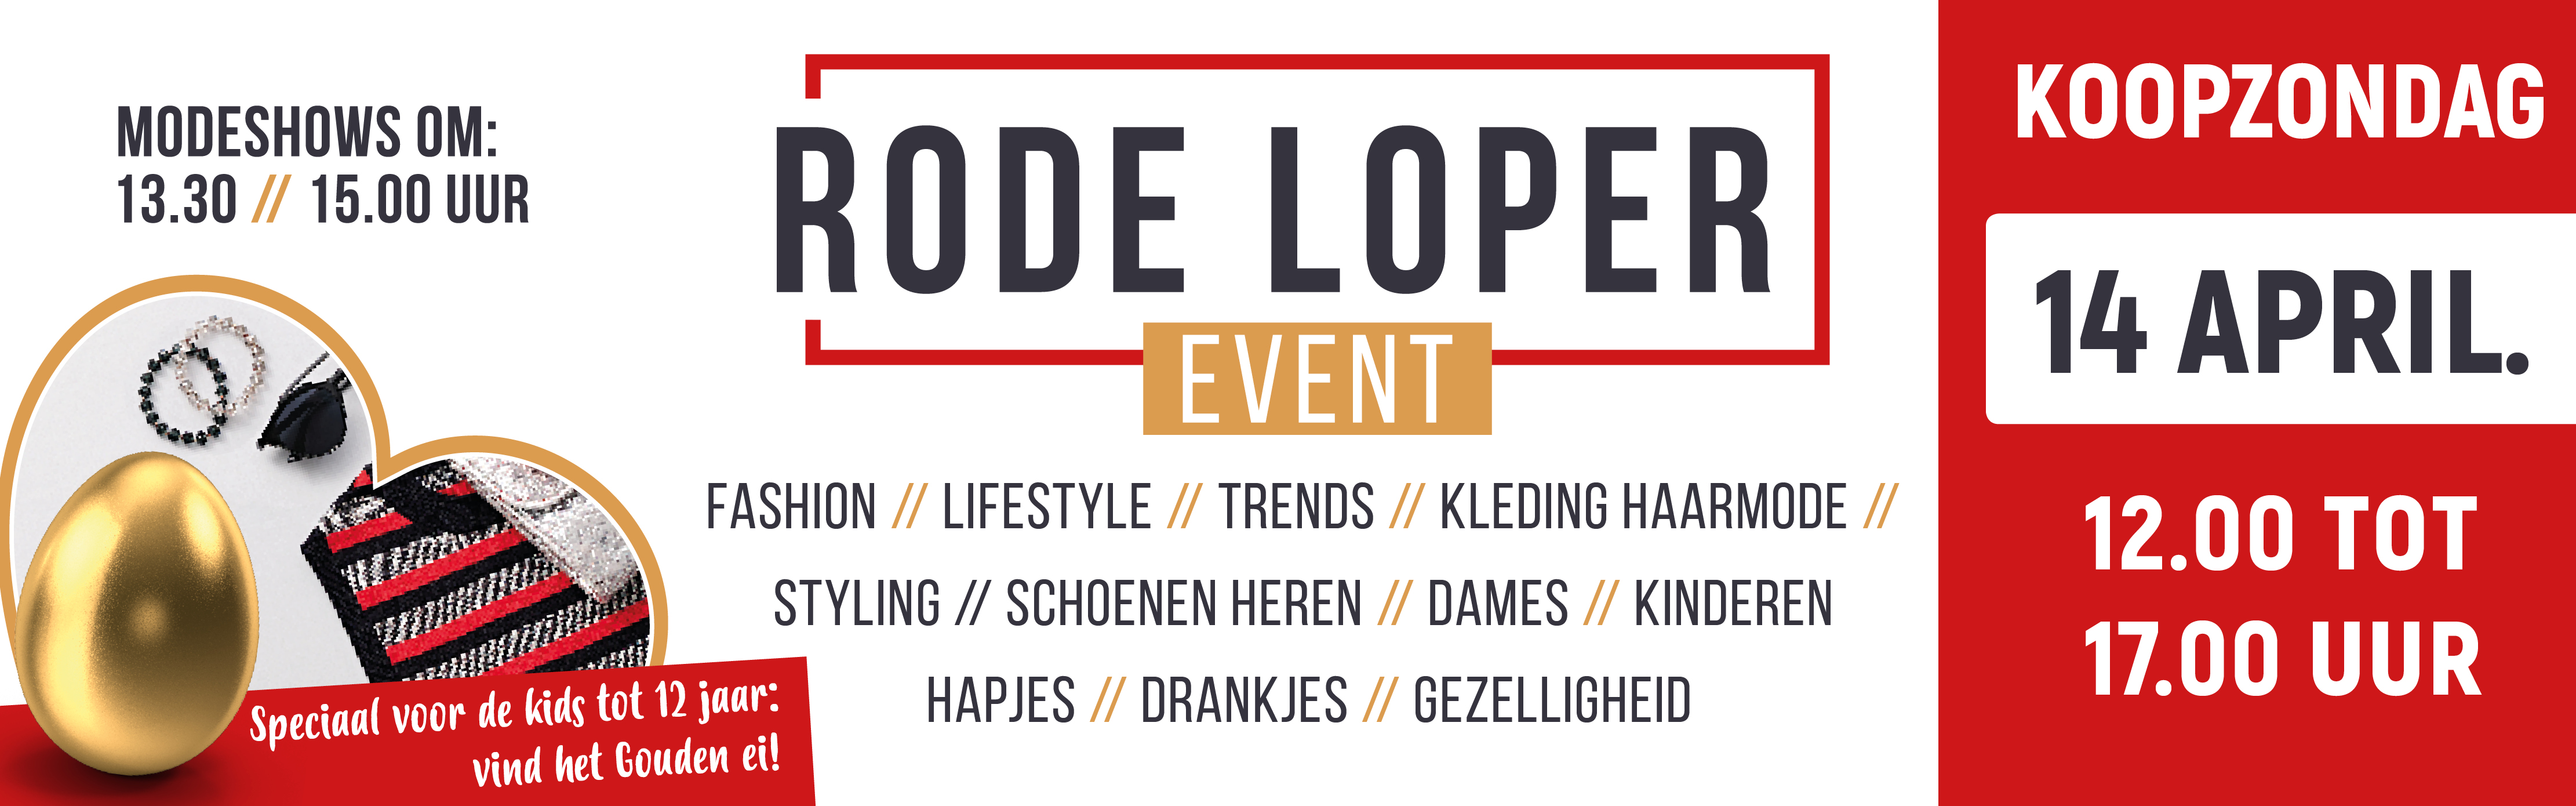 Header-OHT-rode-loper-event-2019